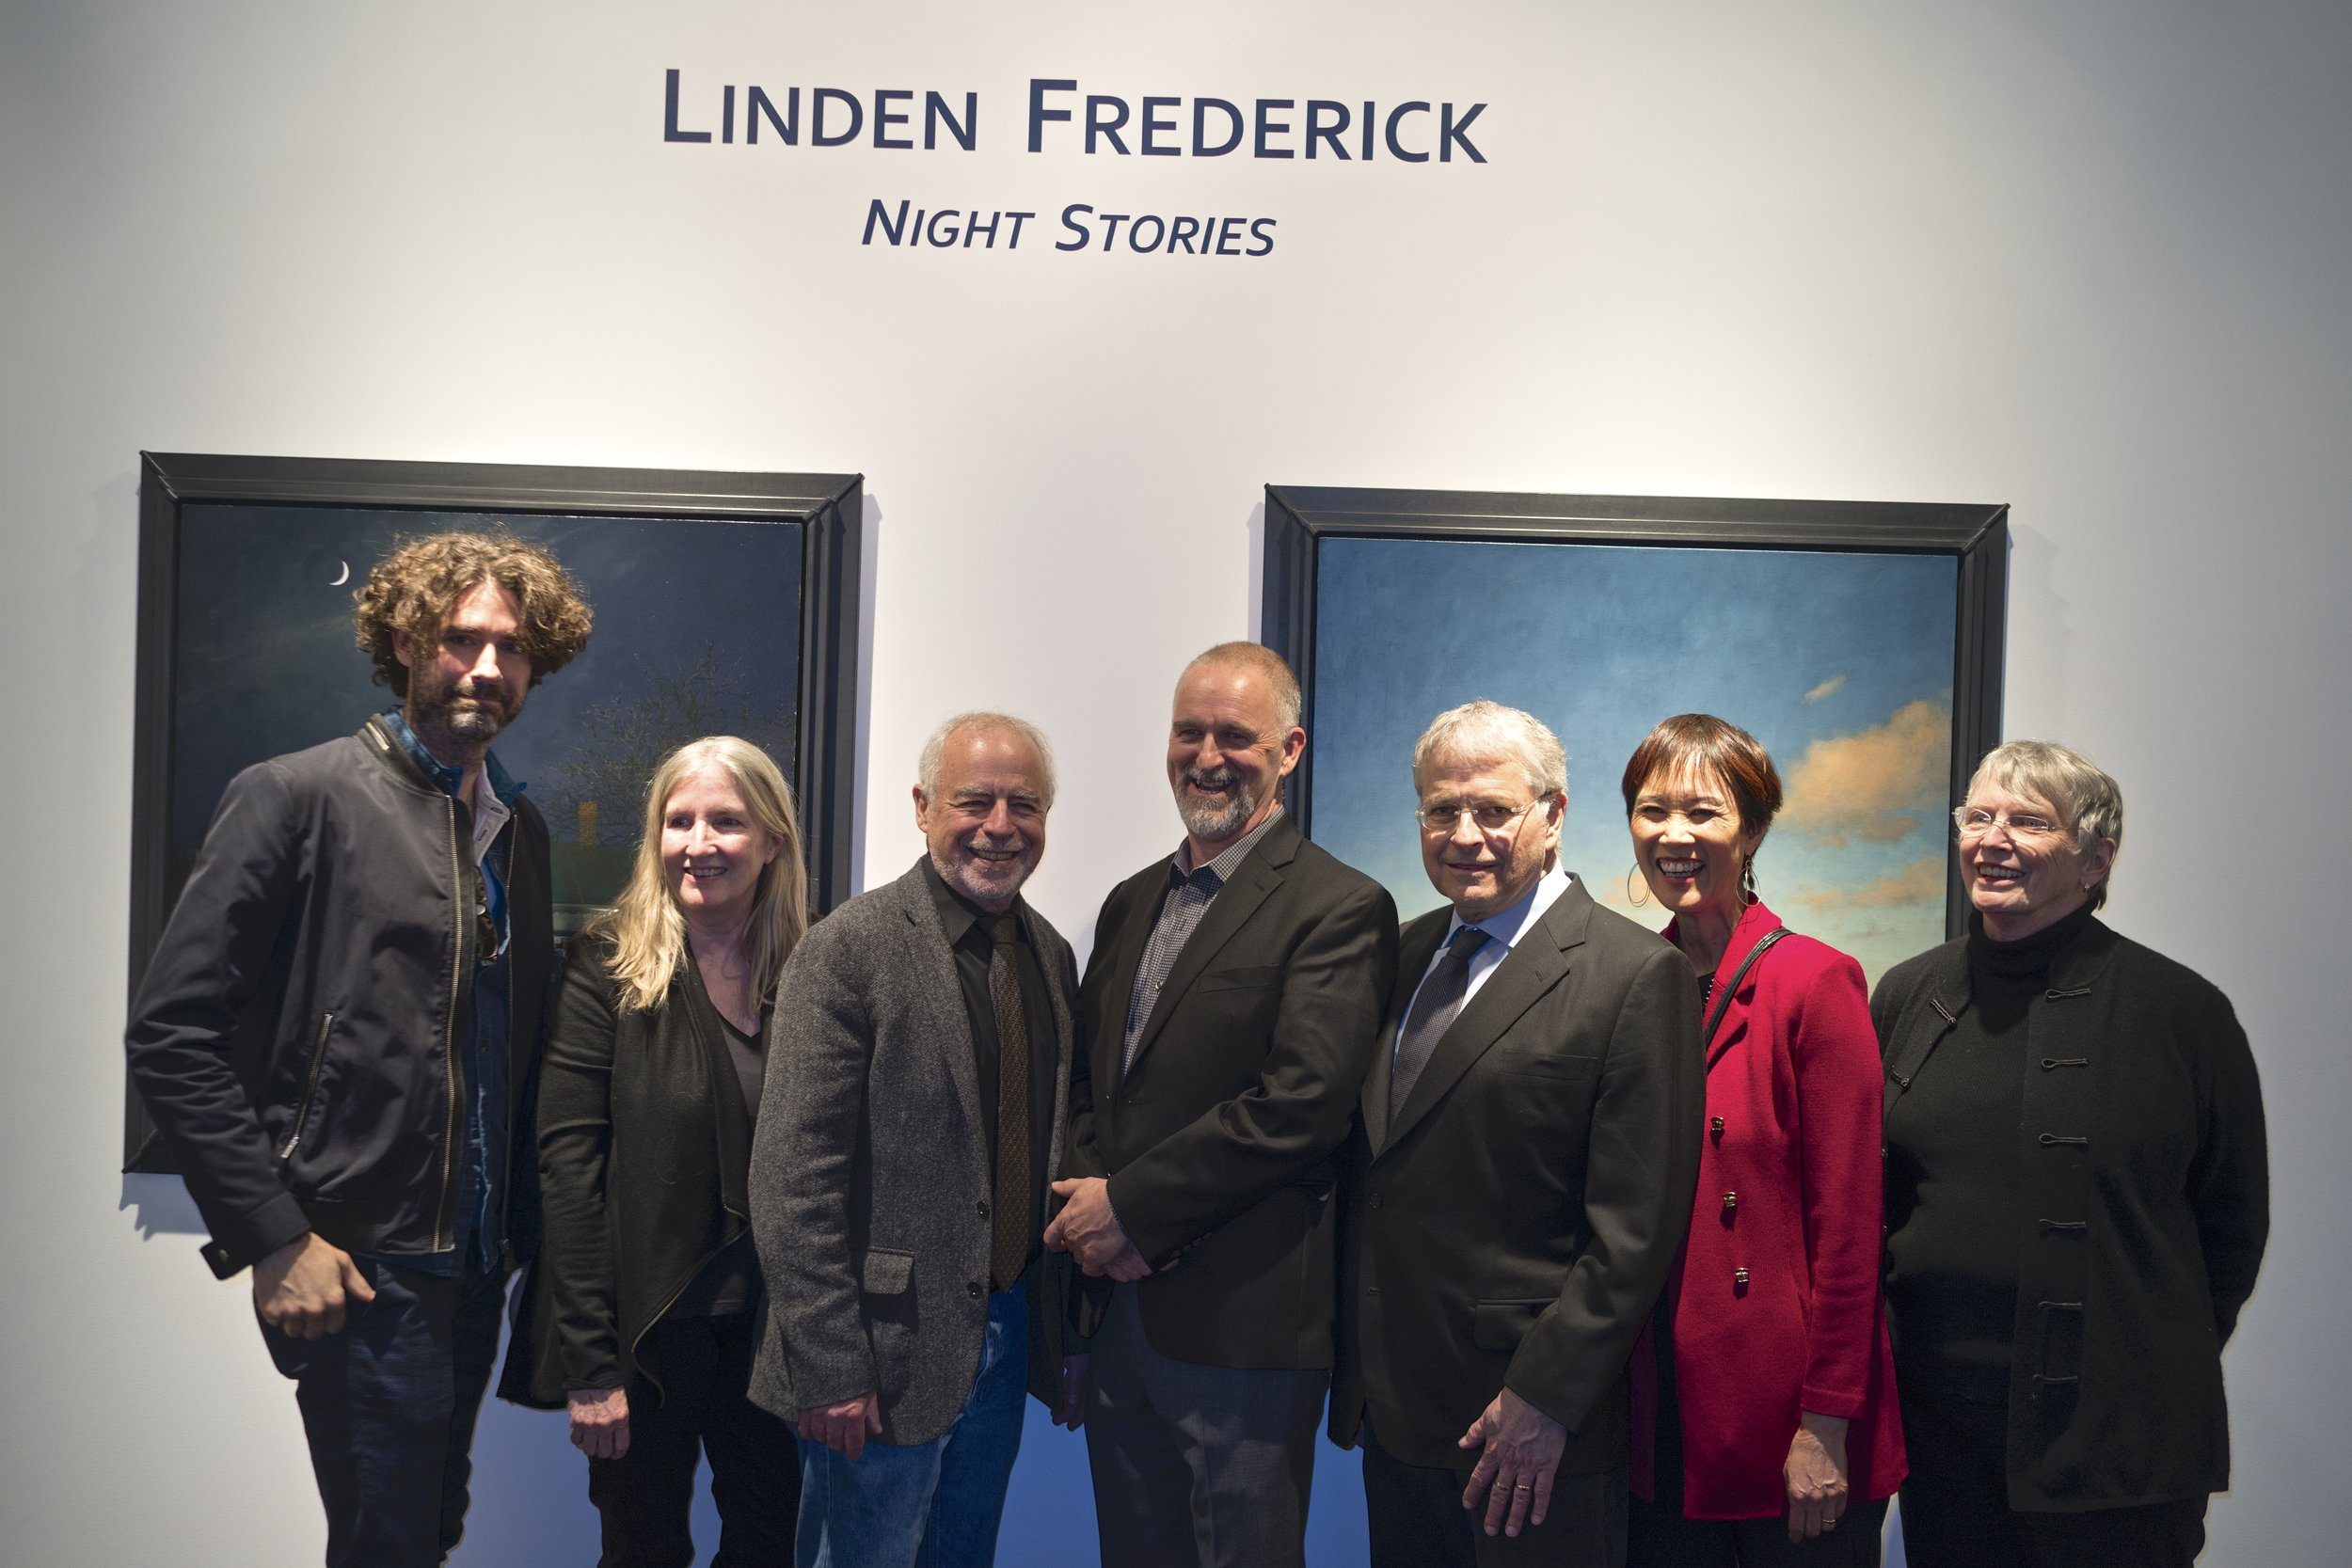 Linden with some of the writers who contributed to the book.  L-R: Joshua Ferris, me, Richard Russo, Linden Frederick, Lawrence Kasdan, Tess Gerritsen, Lois Lowry (photo by Jacob Gerritsen)